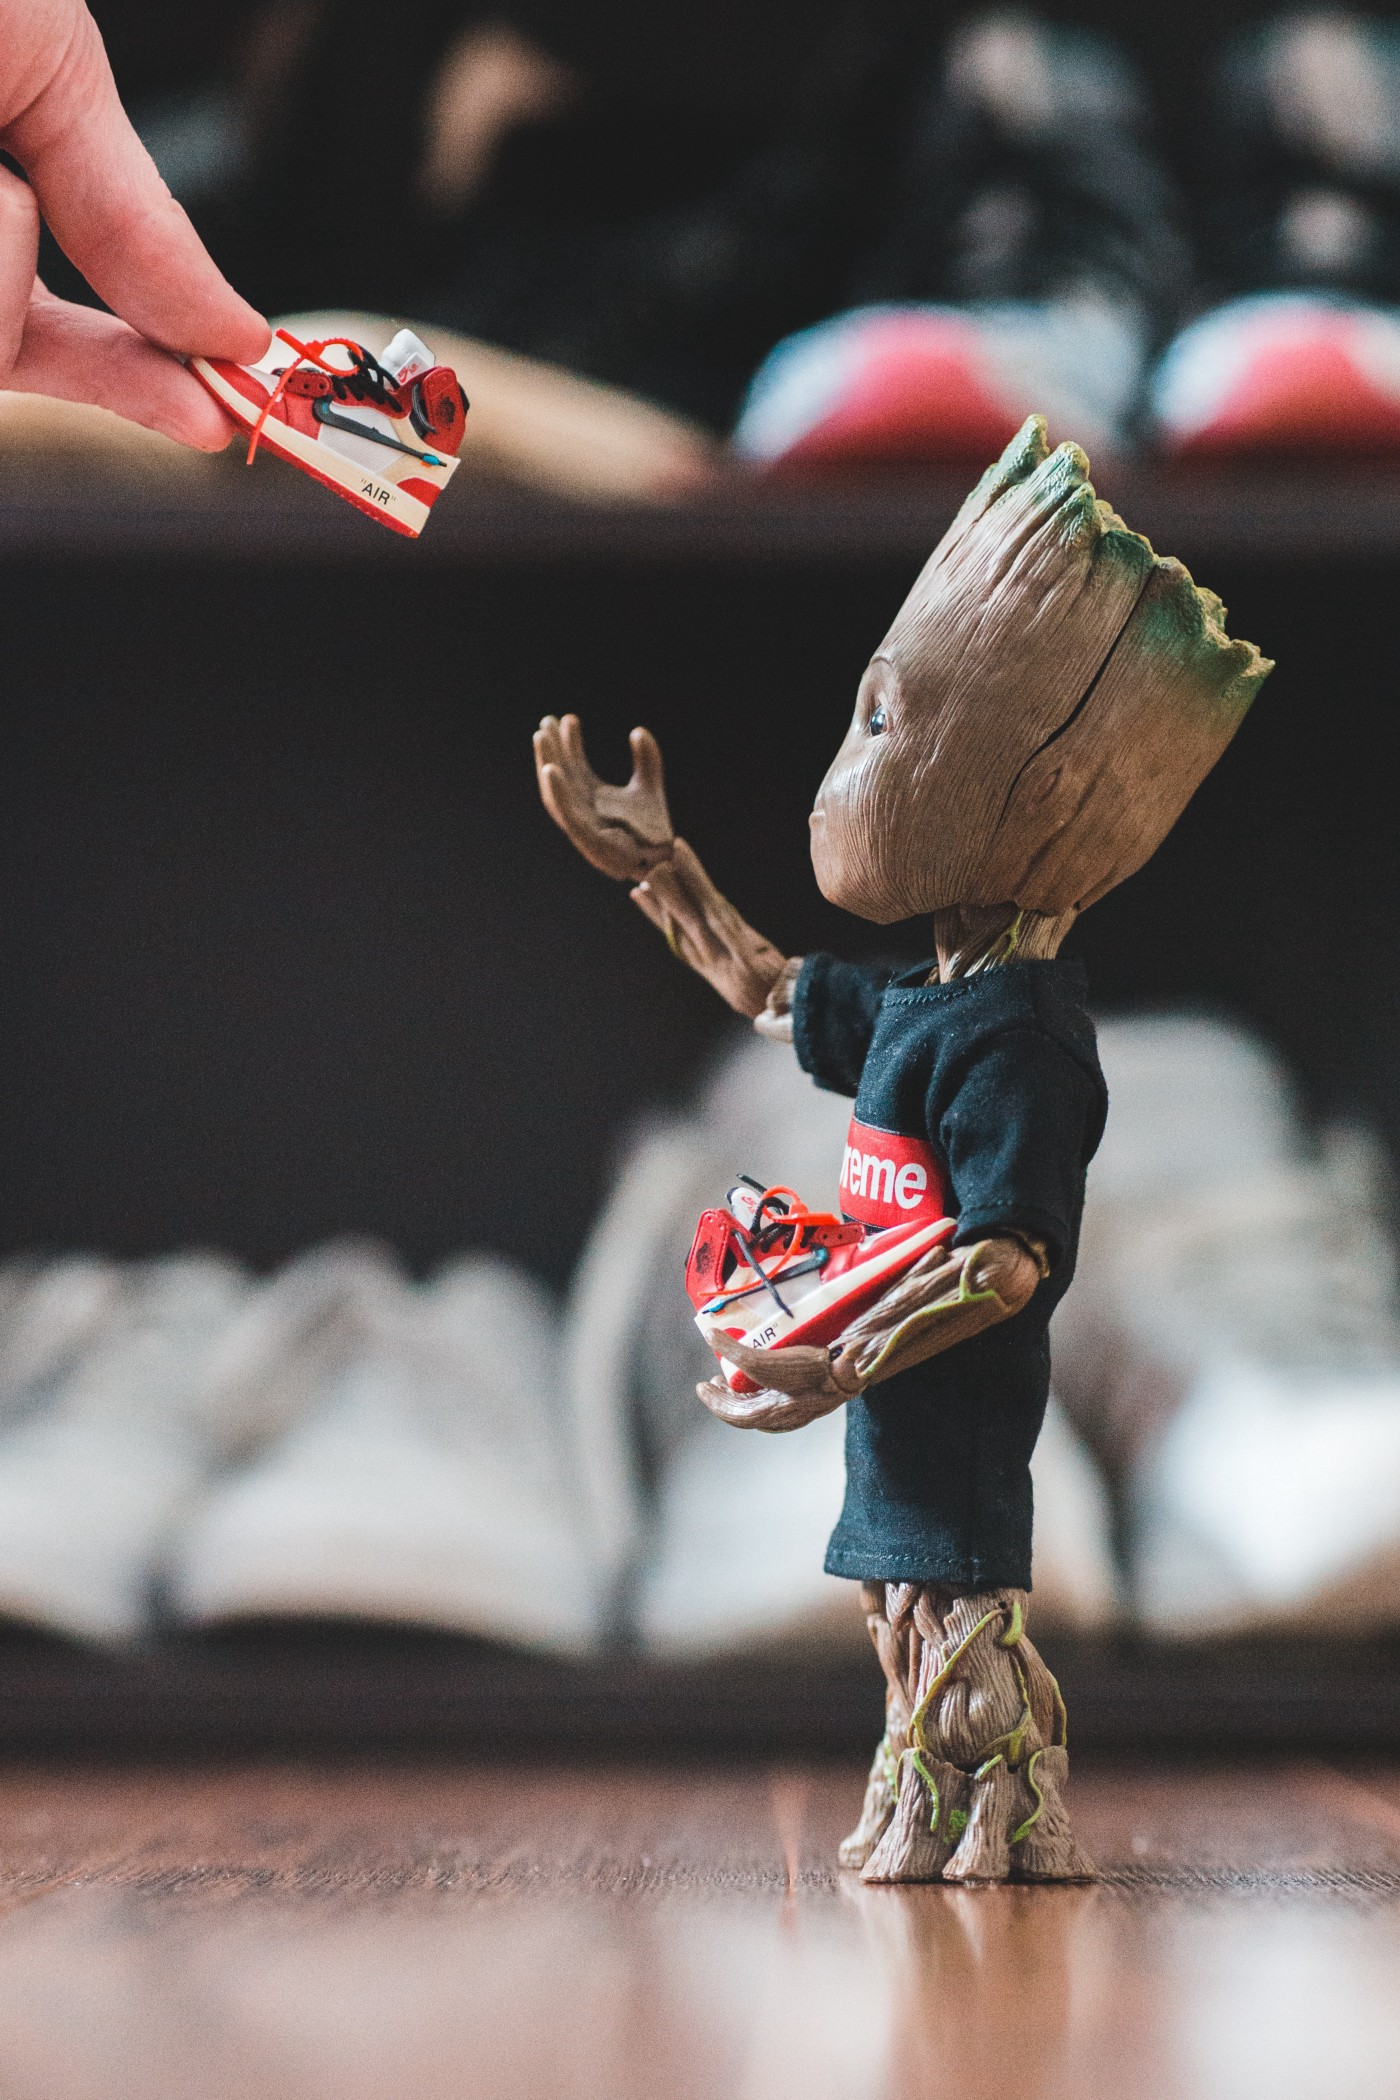 Model of baby Groot accepting a pair of shoes from a hand (of a Man)